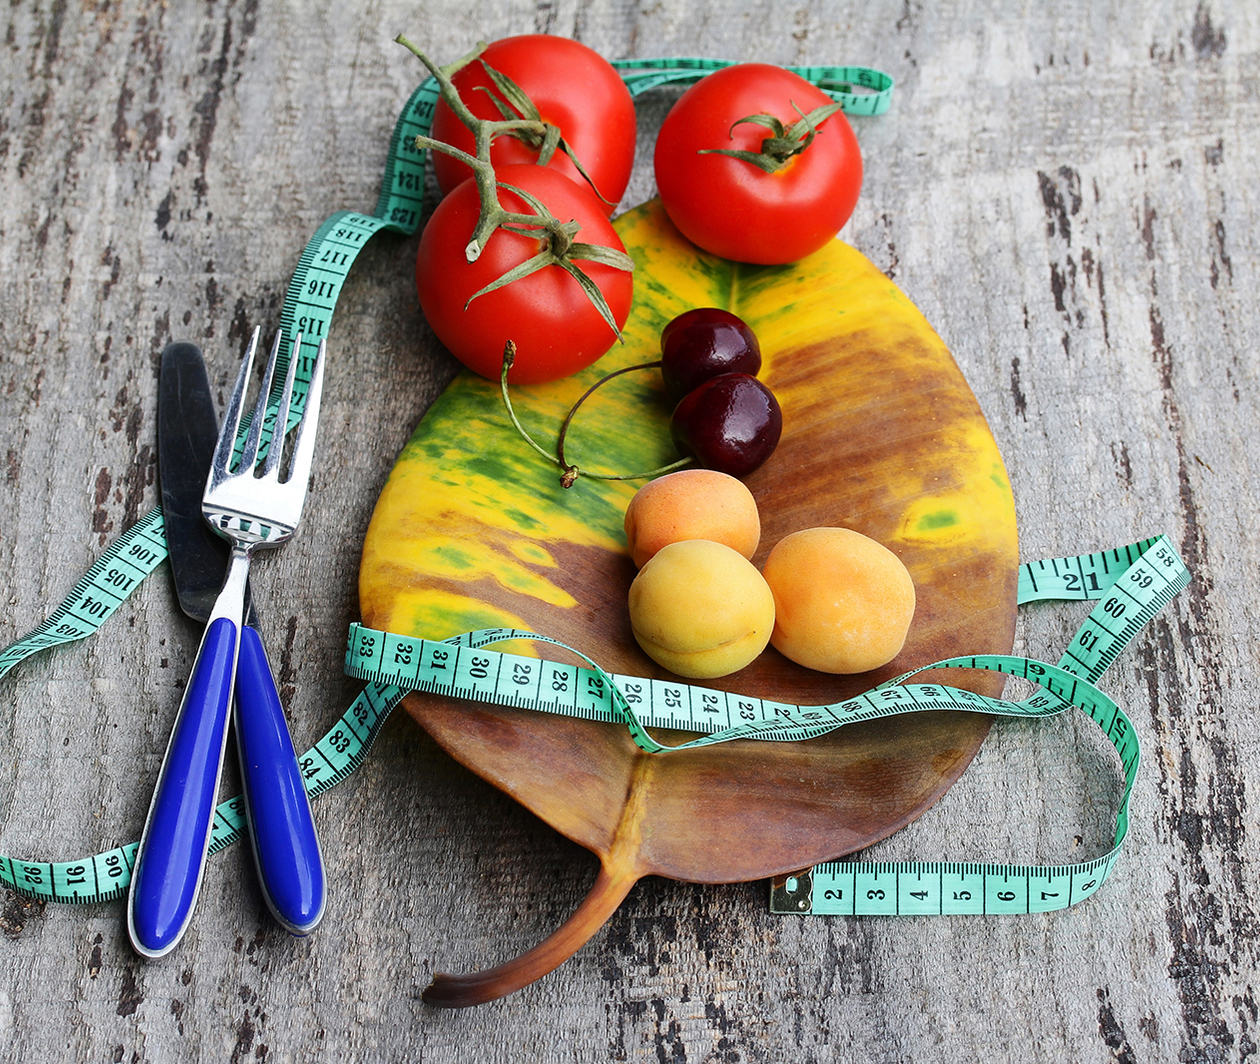 Food as Medicine: Talking about Weight